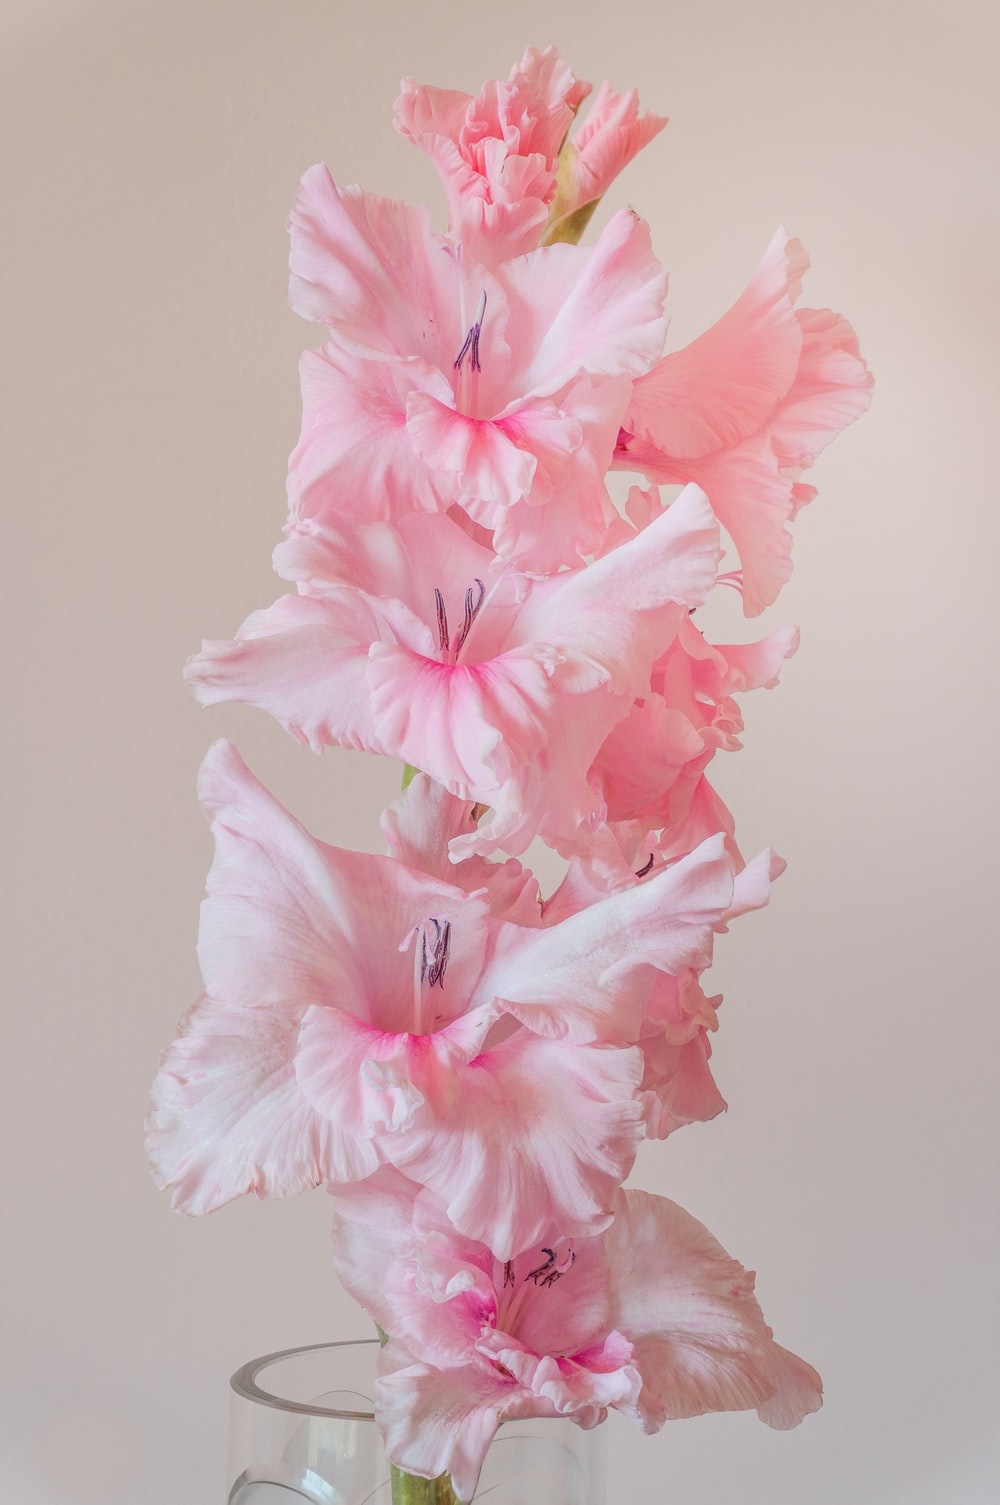 pink hibiscus in bloom close up photo